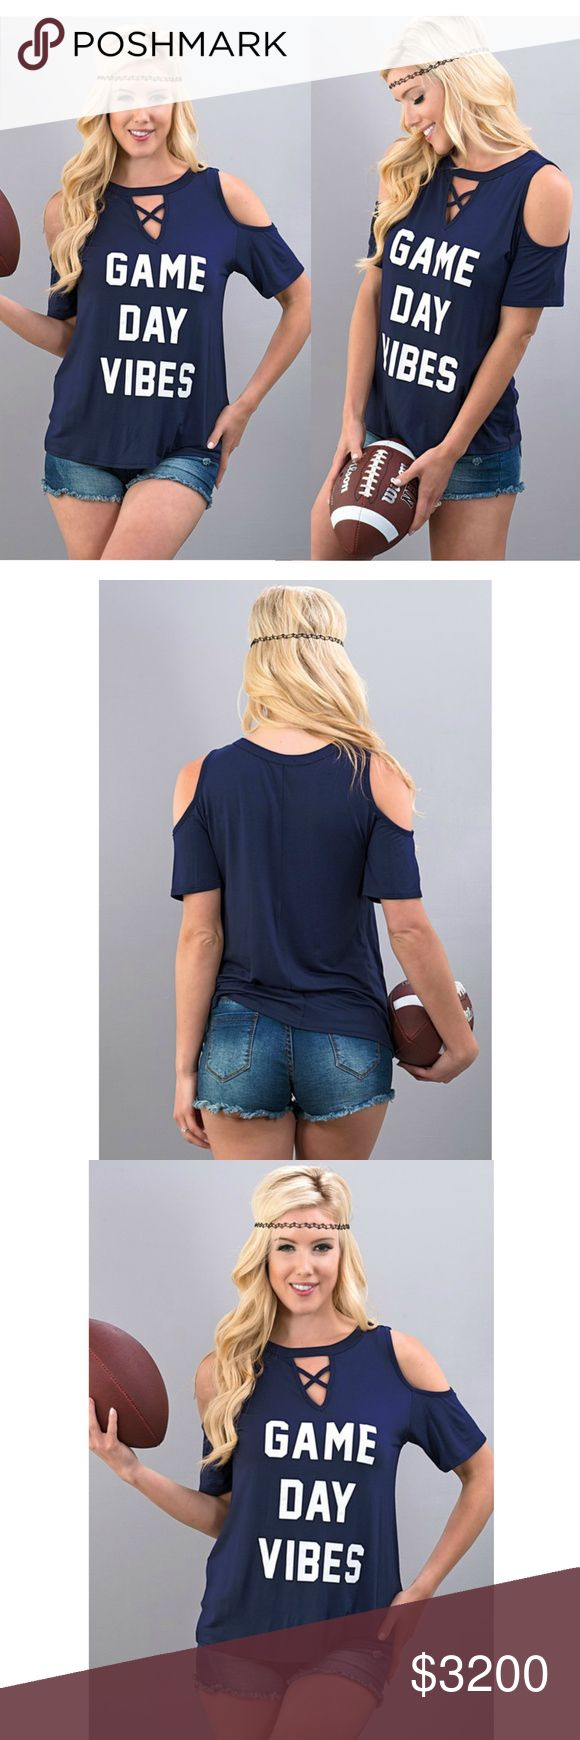 Coming Soon! Game Day Vibes Football Top Coming Soon! Game Day Vibes Football Cold Shoulder Top. Made in USA Happy Organics Boutique Tops Tees - Short Sleeve